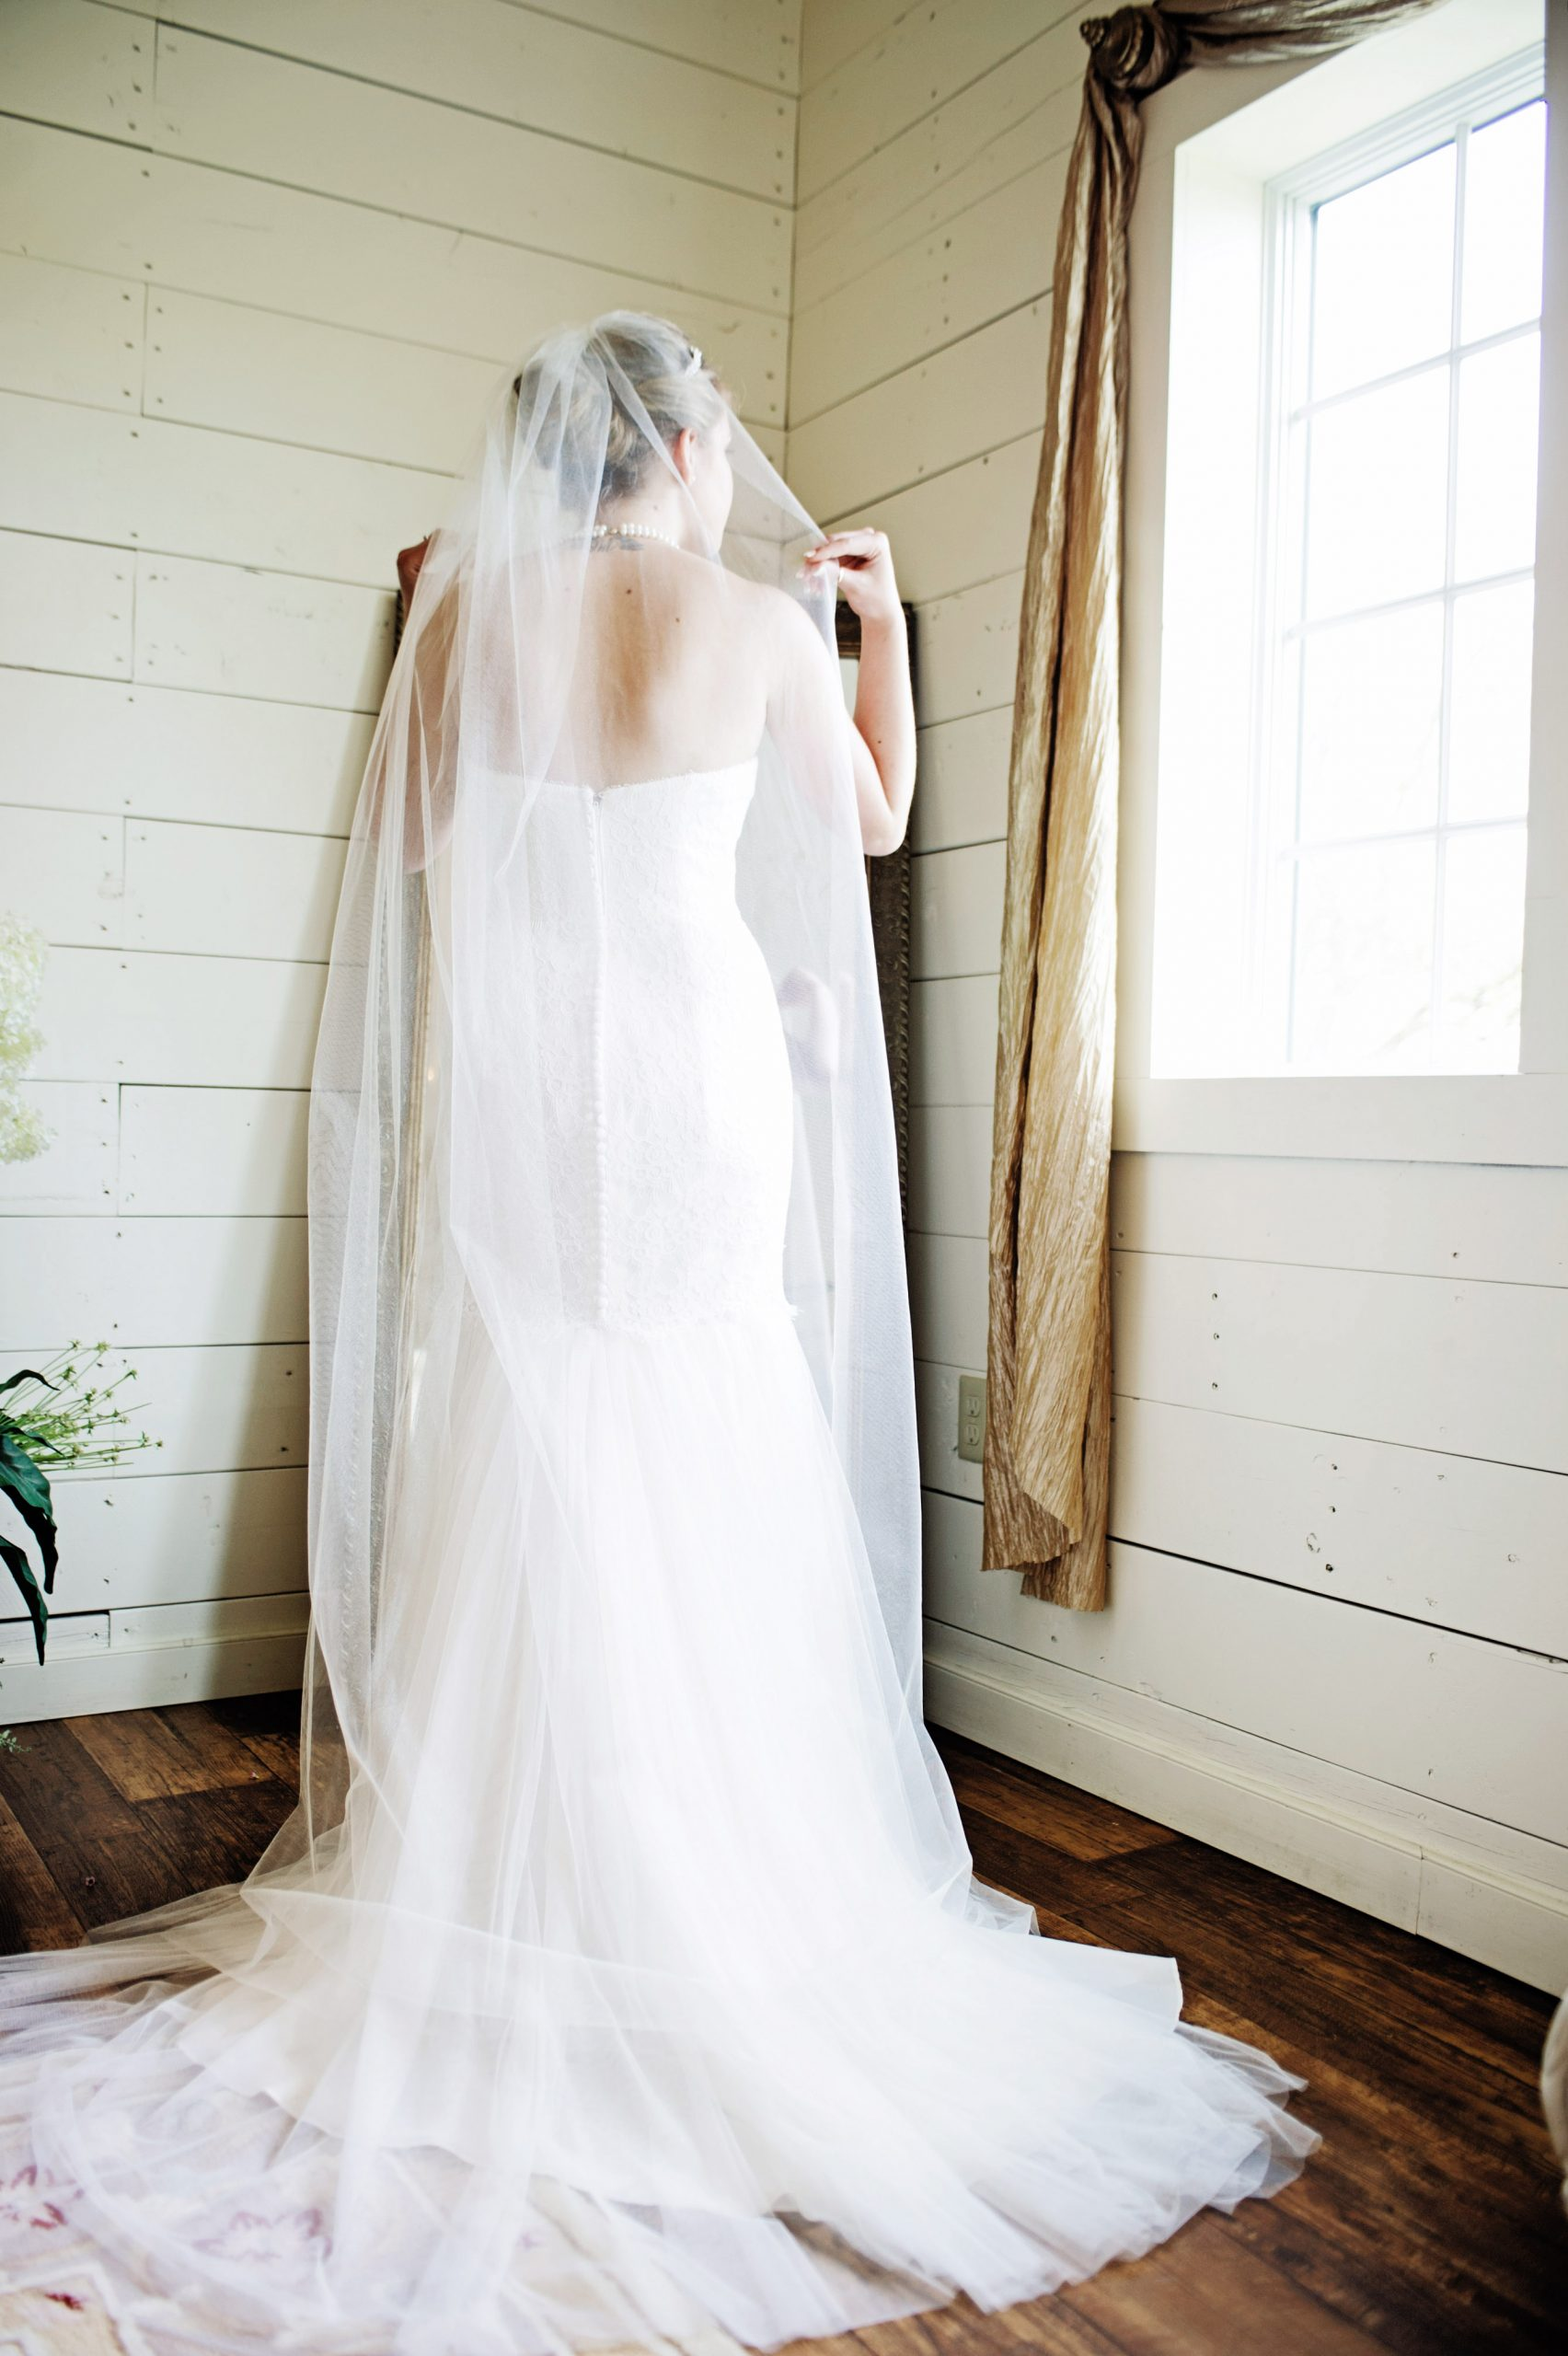 Kady onlooking as she prepares to walk down the isle at Lakeview Farms in York, PA. Lovefusion has an eye for lighting when shooting this photo. Featured in Dream Weddings.